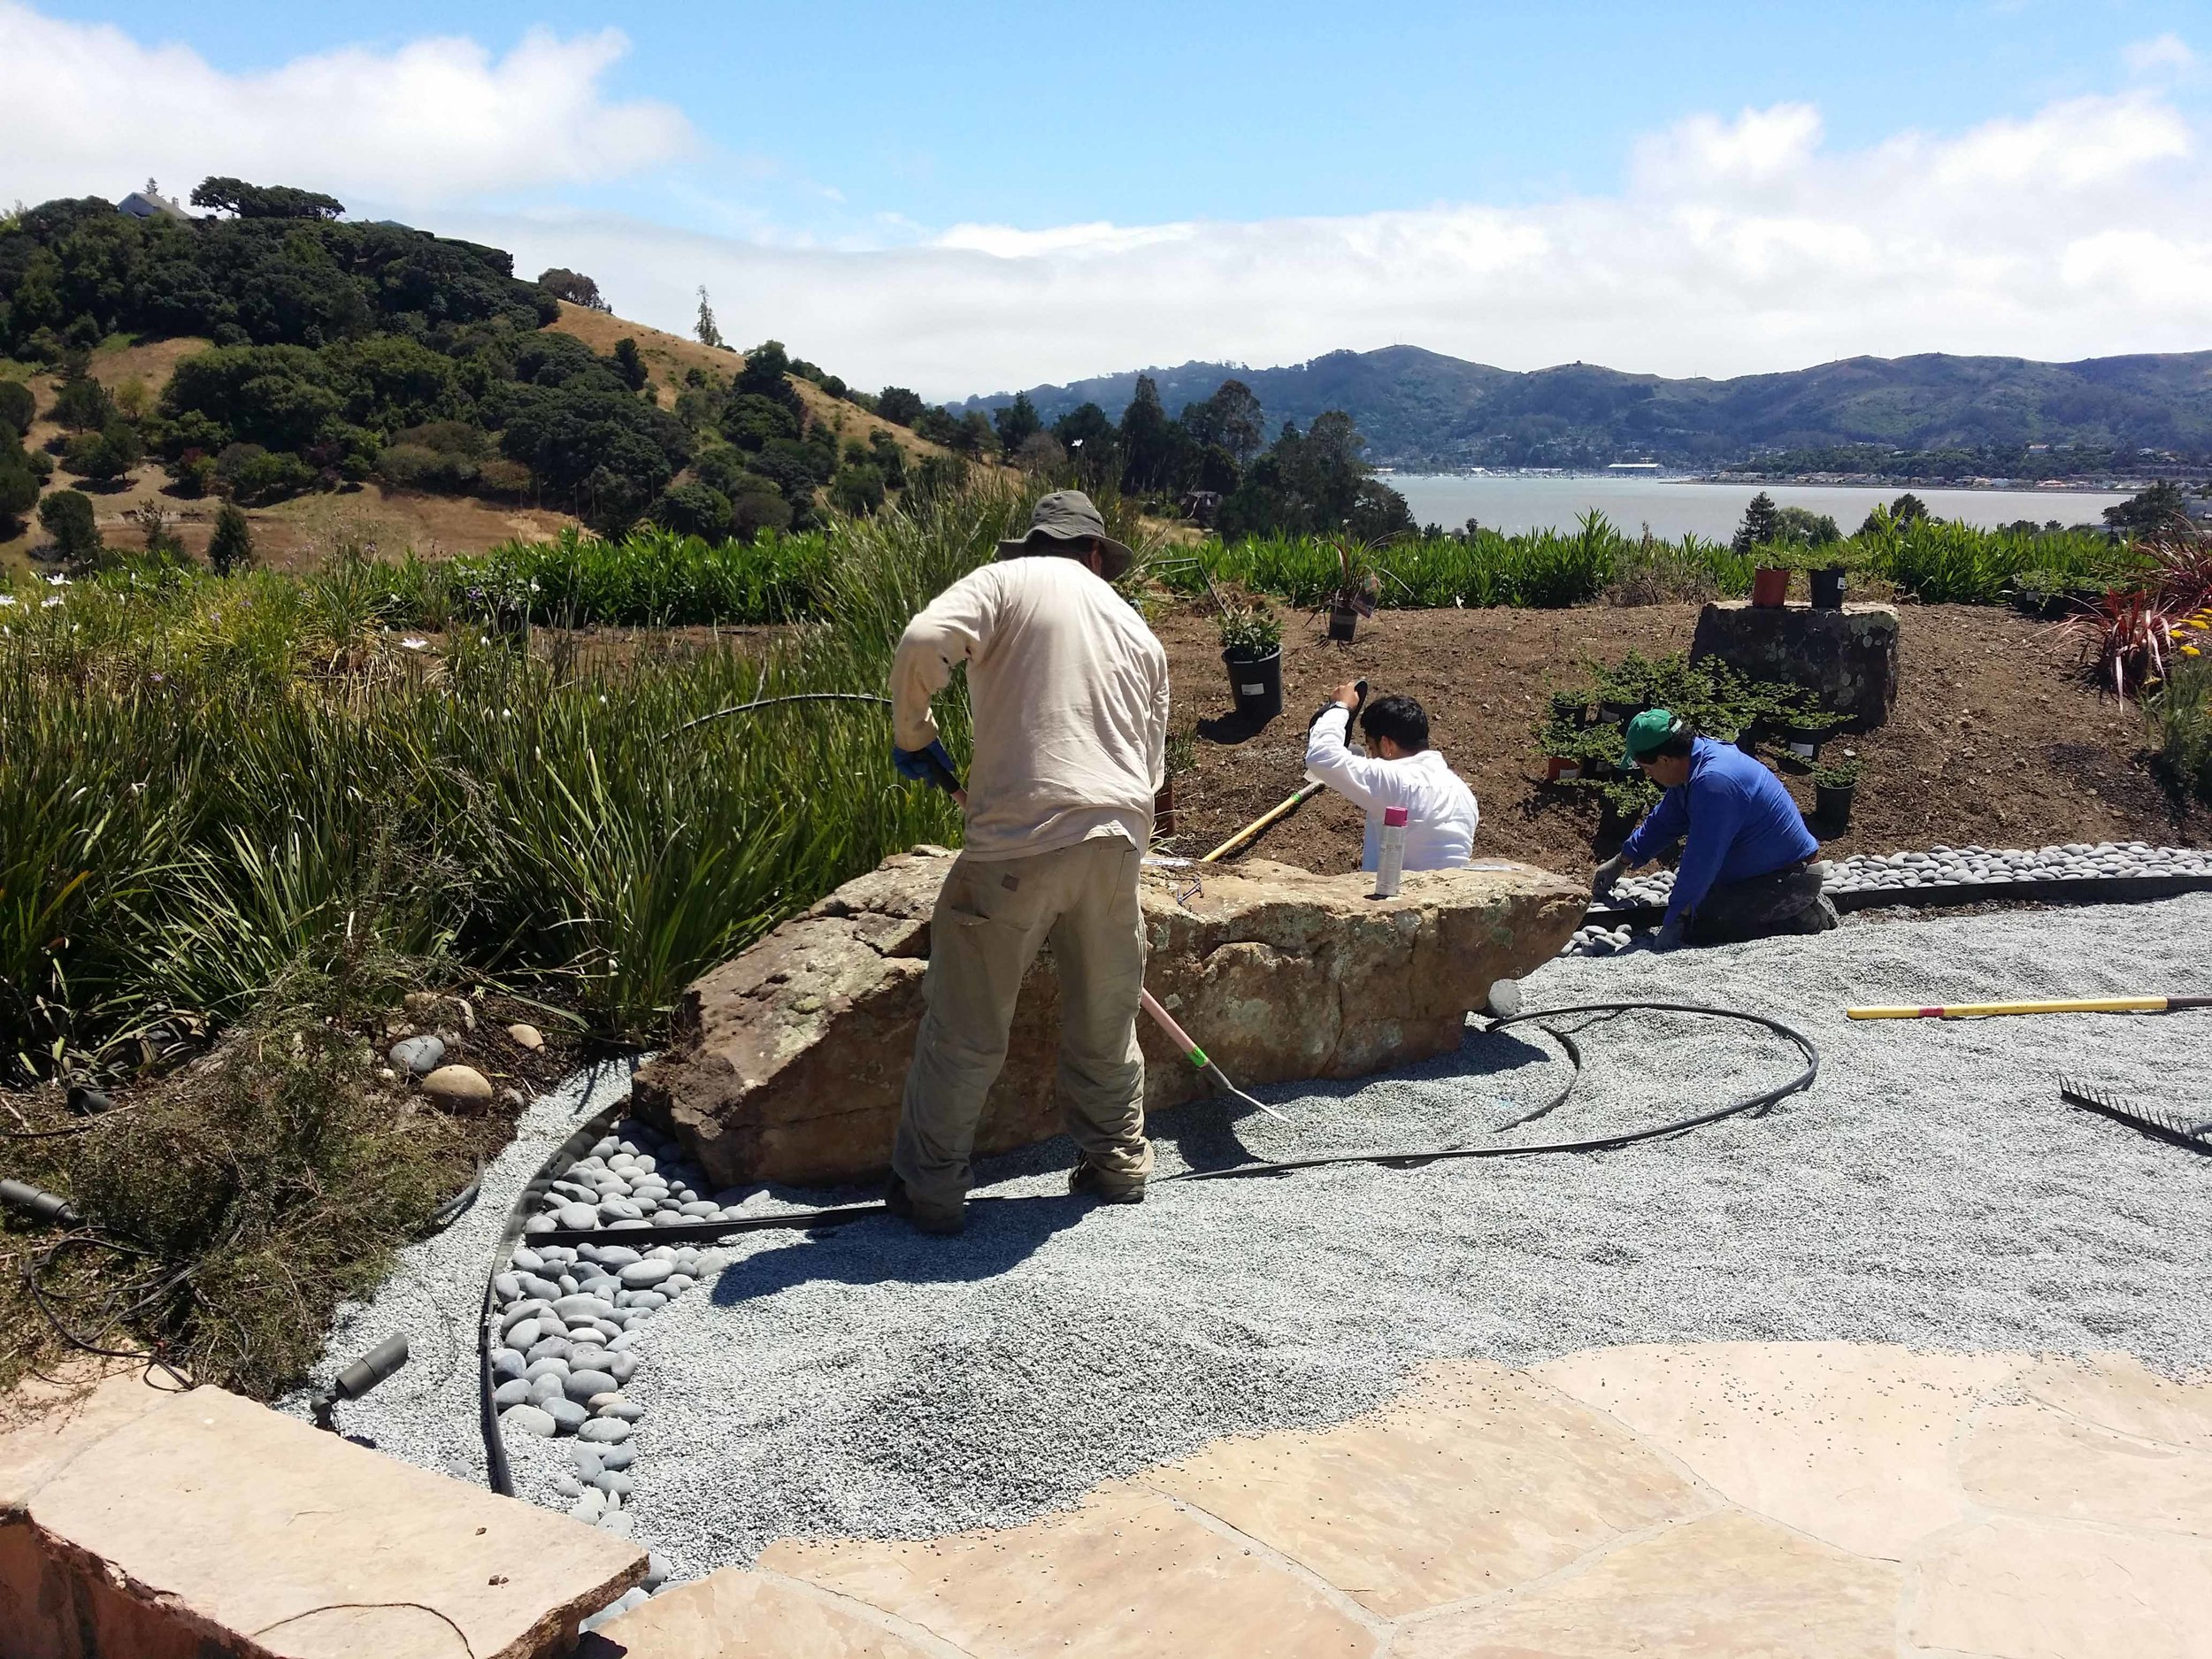 Mystical Landscapes is a Marin based design and installation company that assists clients with all their landscape and site development needs including driveways, lighting, decks, play structures and retaining walls.